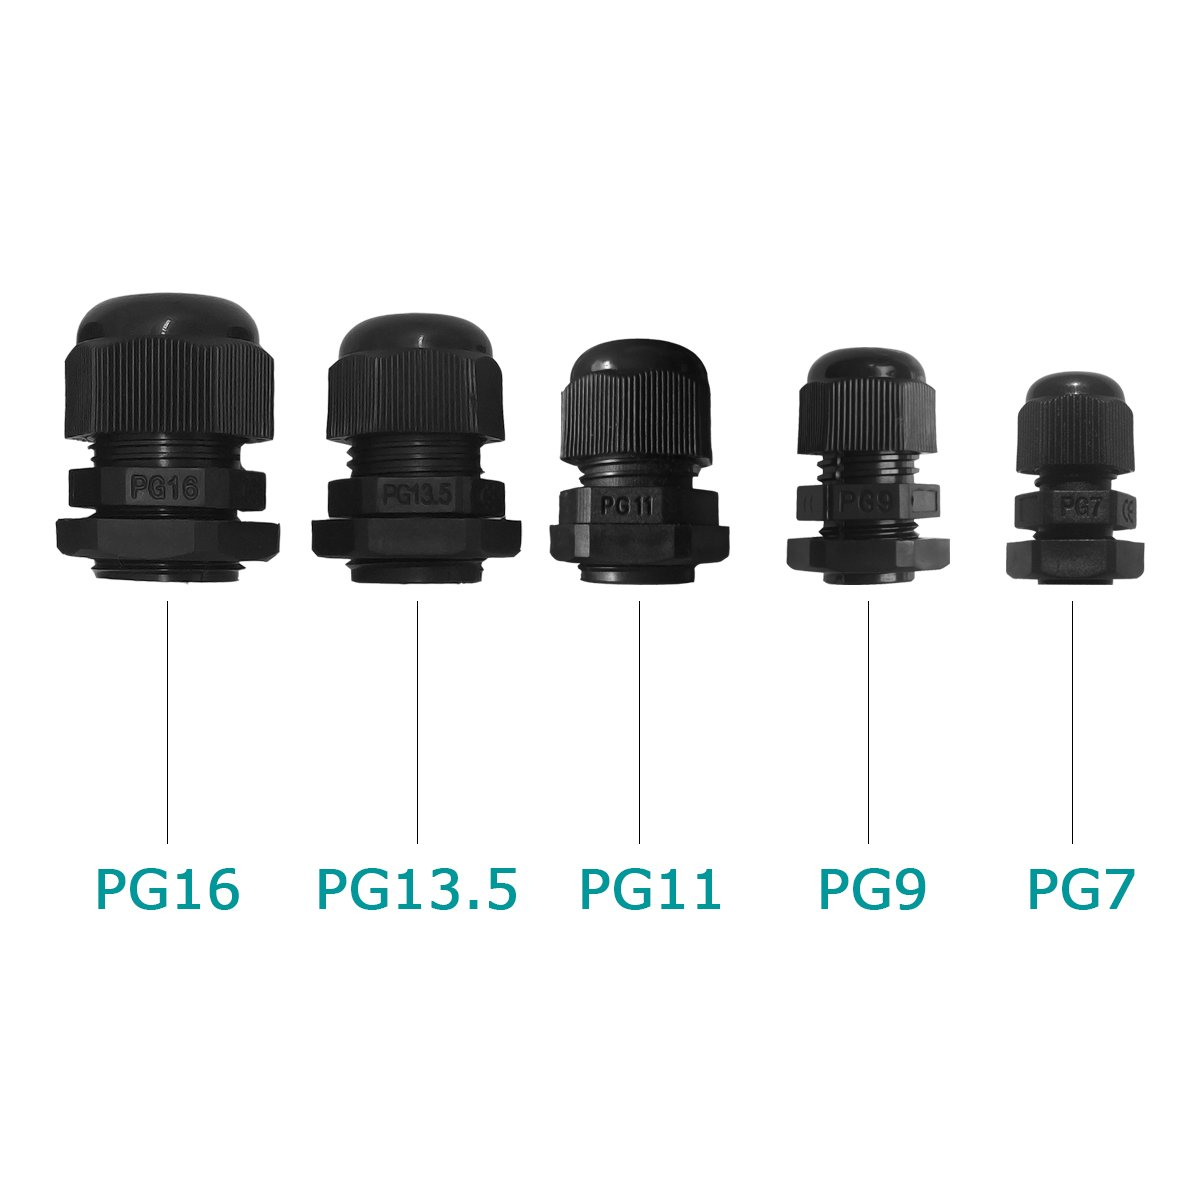 Pack of 50 PG13.5 Lantee Plastic Waterproof Adjustable 3.5-13mm Cable Glands Joints PG7 PG16 PG11 PG9